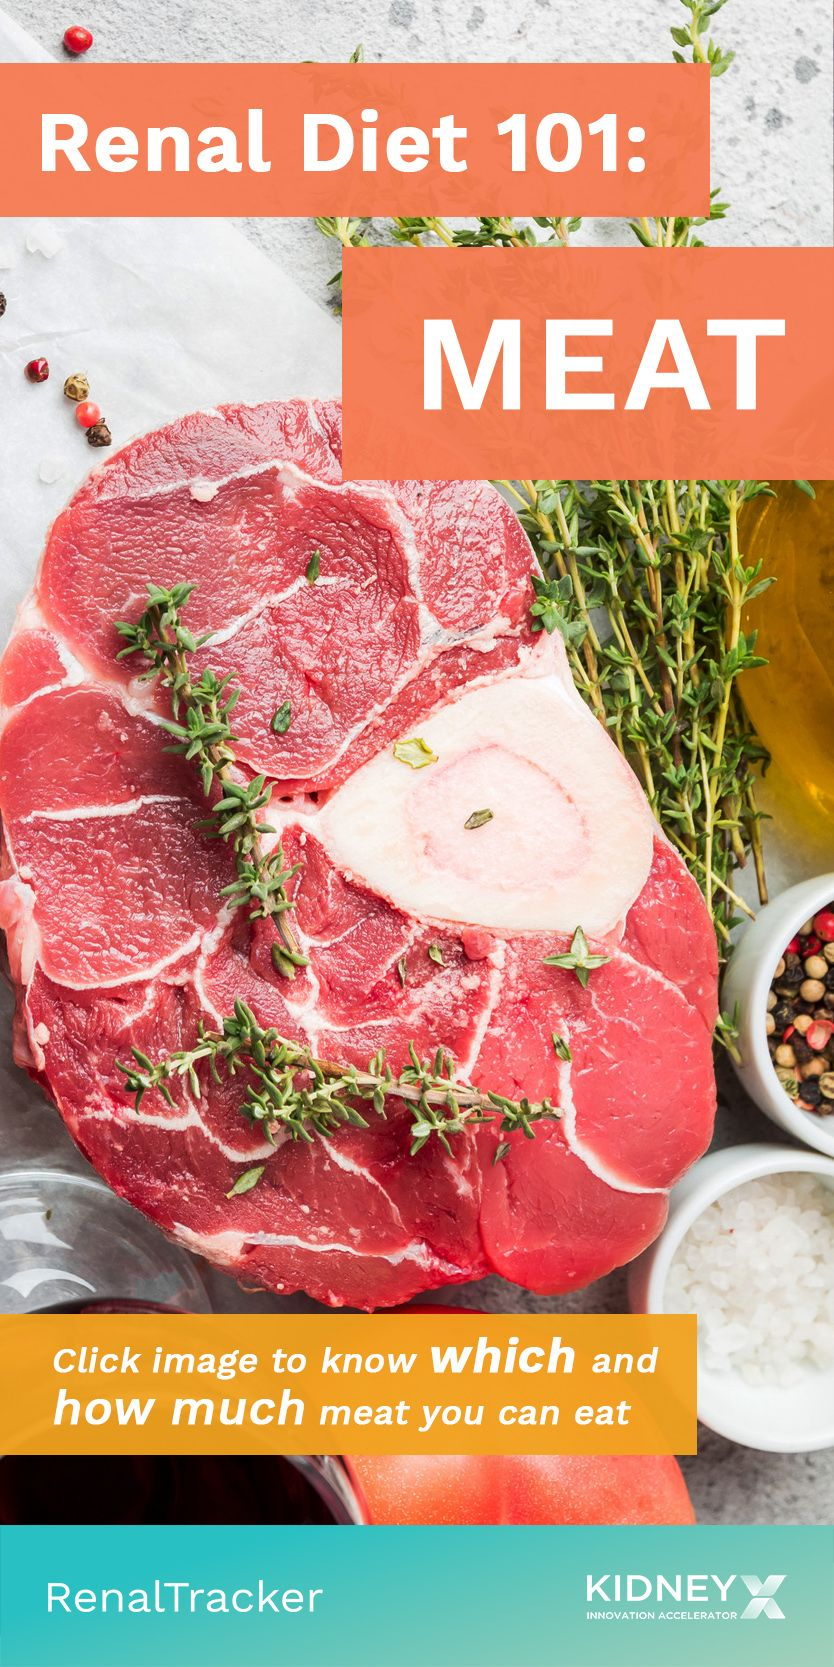 is beef good on renal diet